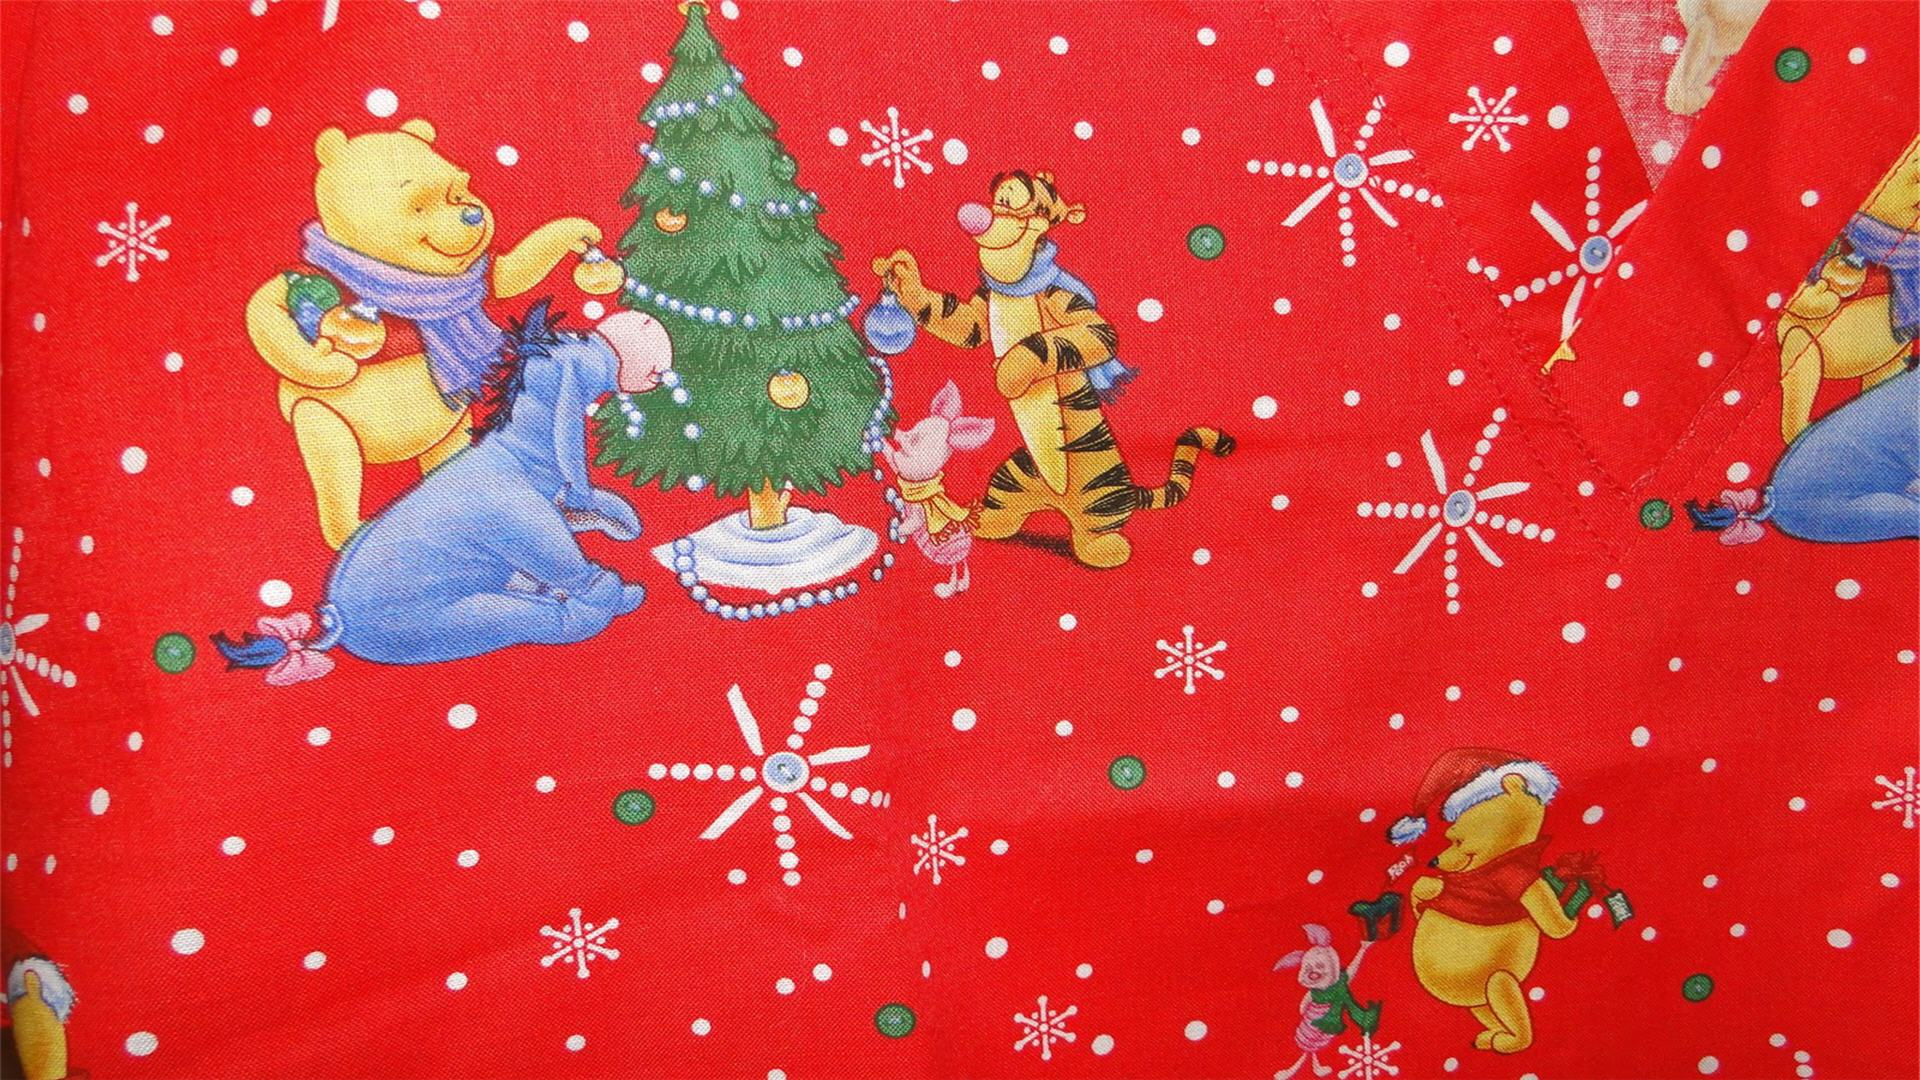 Winnie The Pooh Christmas wallpapers HD free - 470687